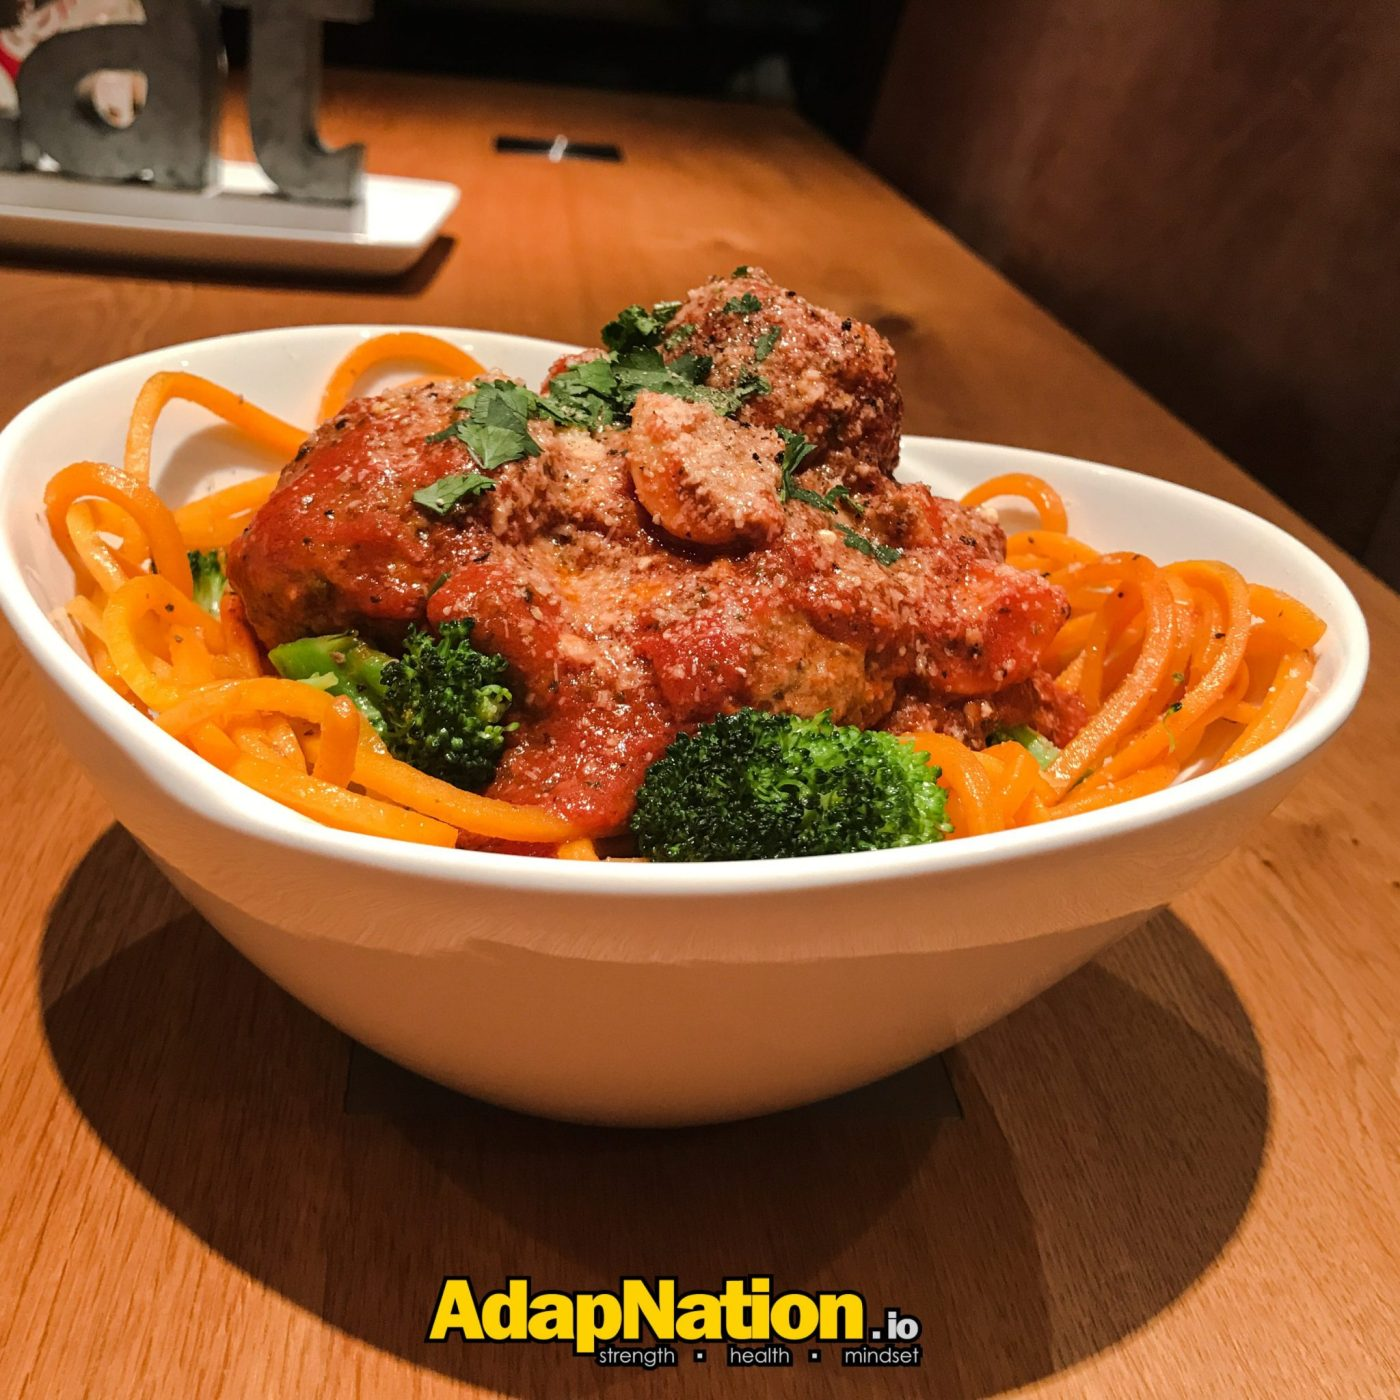 AdapNation - Butternut squash meatballs